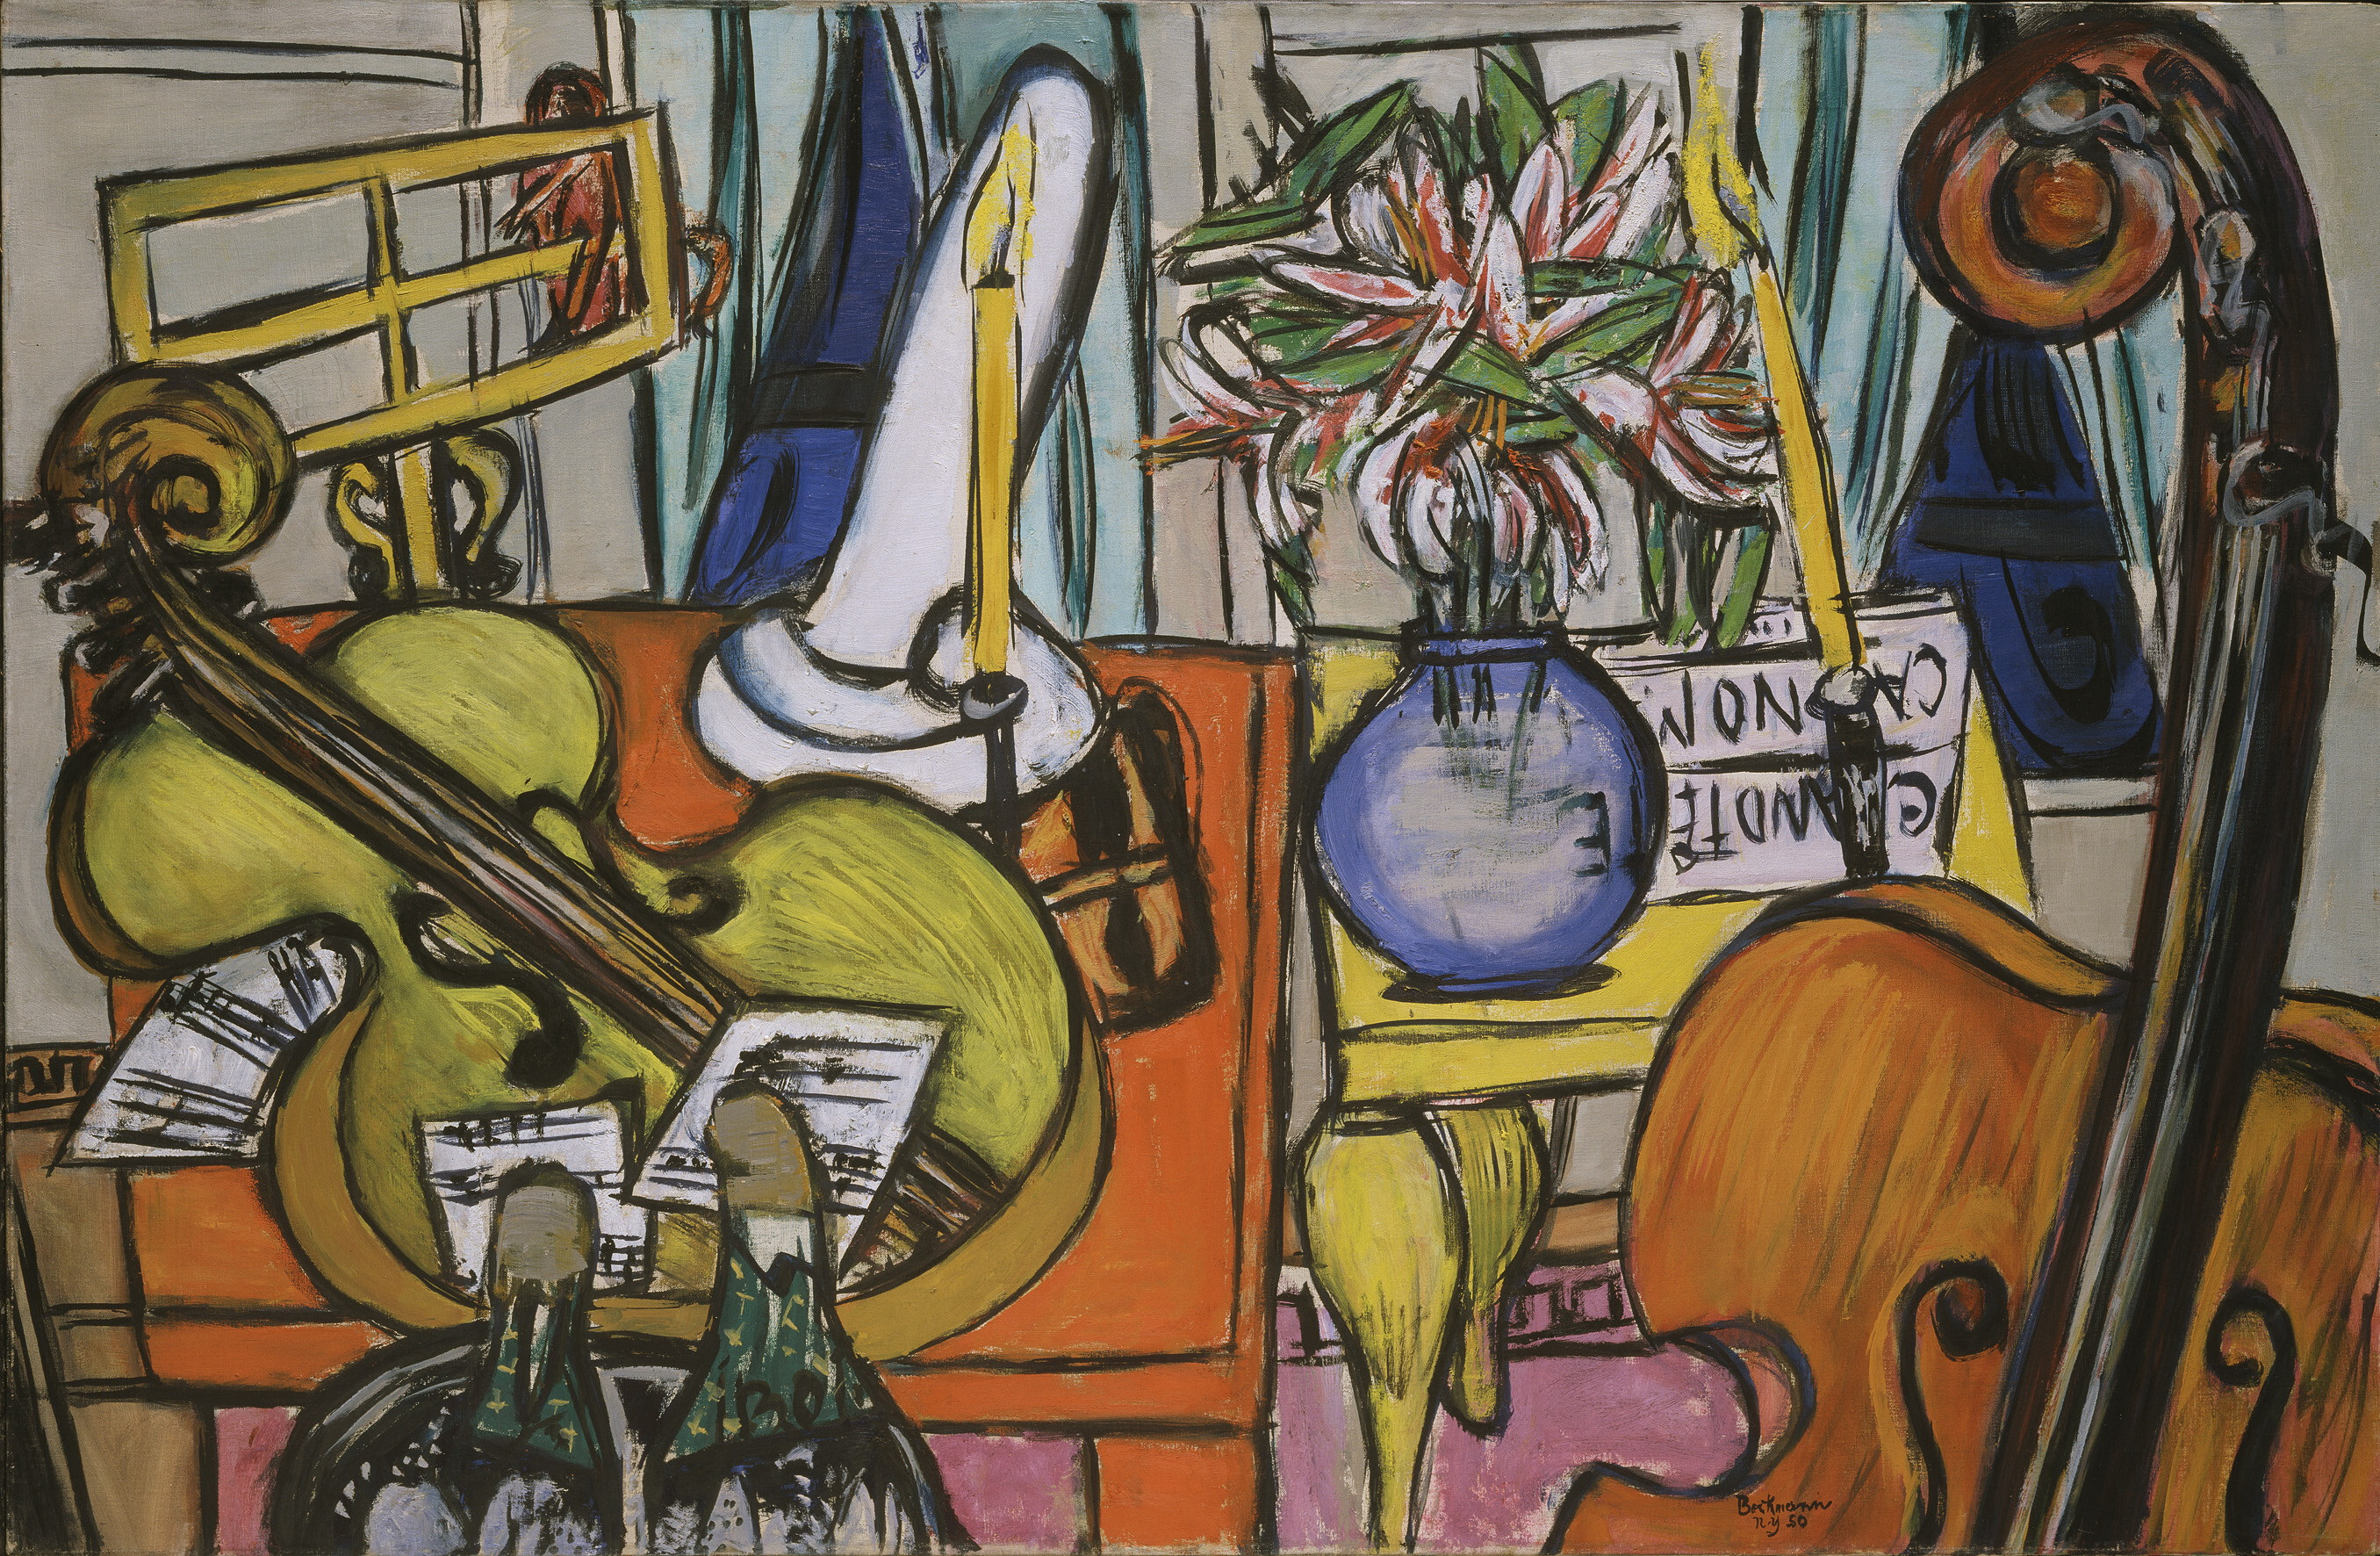 Max Beckmann,(1884-1950)  Stillleben mit Cello und Bassgeige, 1950  Öl auf Leinwand, 91,8 x 139,6 cm  Hirshhorn Museum and Sculpture Garden,  Smithsonian Institution, Washington, DC, Gift of the  Joseph H. Hirshhorn Foundation, 1966  © VG Bild-Kunst, Bonn 2014